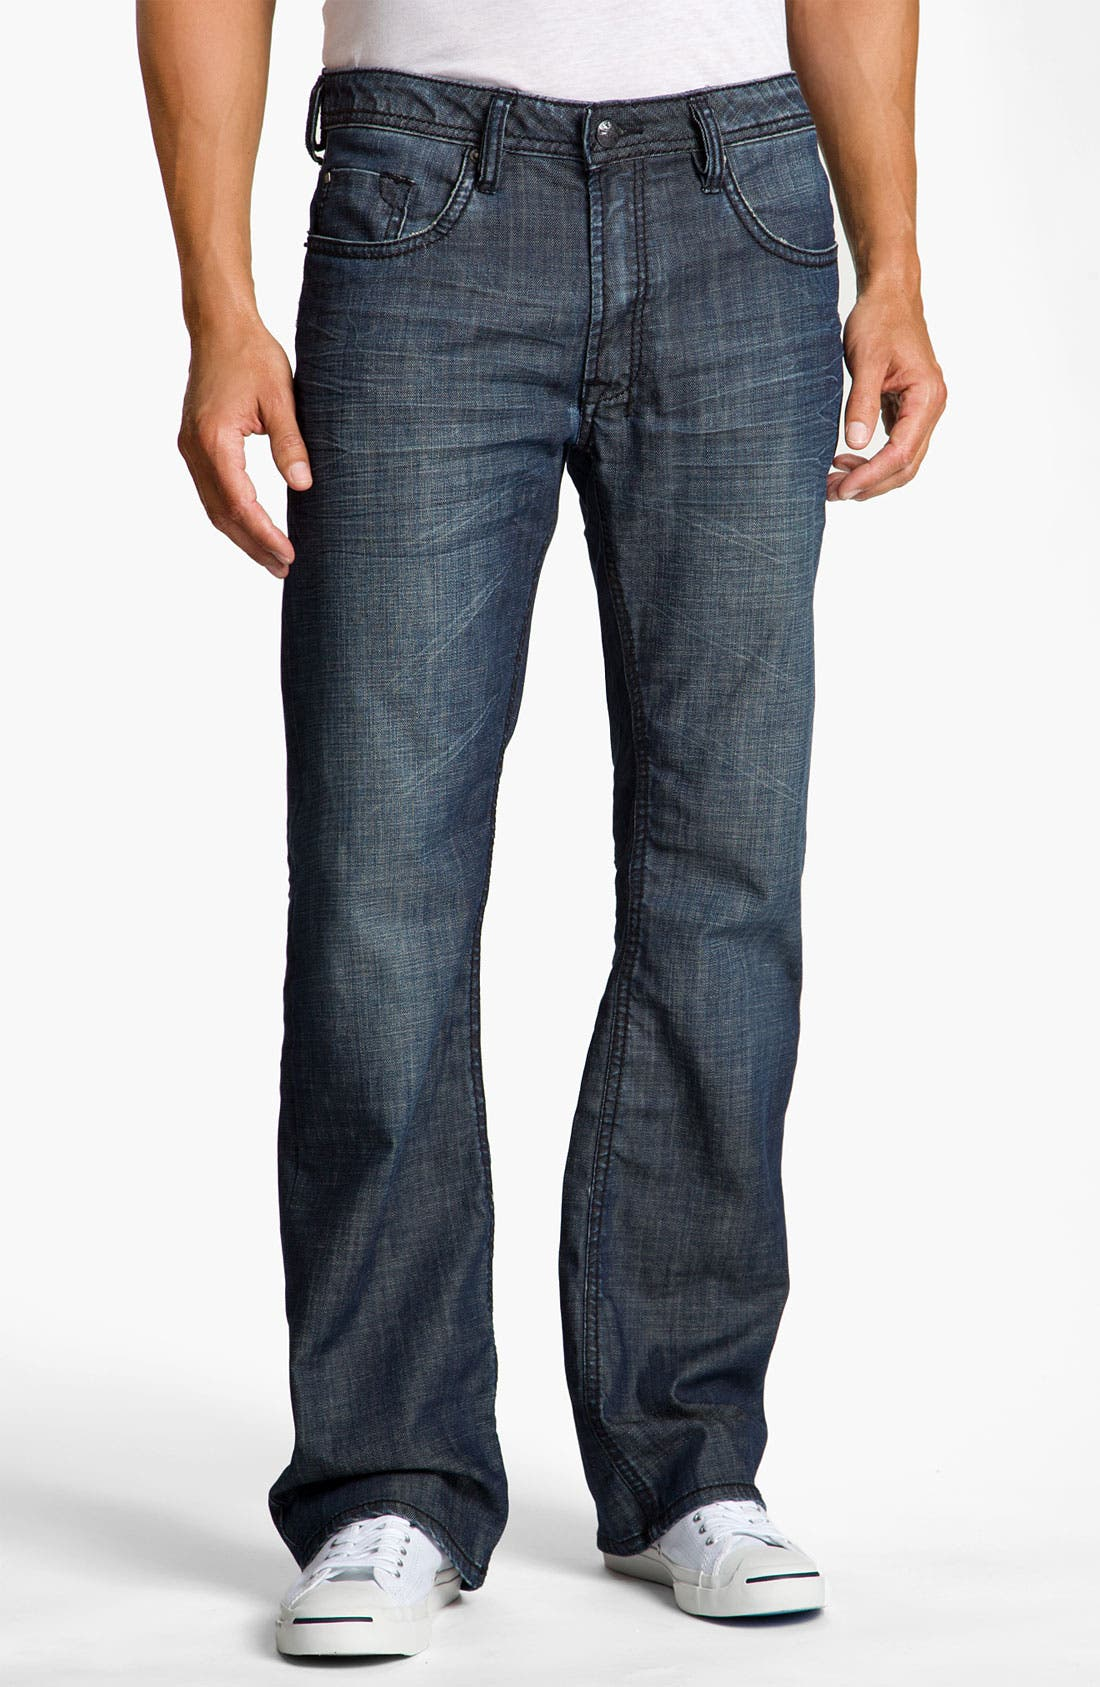 Alternate Image 1 Selected - Buffalo Jeans 'Driven' Straight Leg Jeans (Vintage Stone)